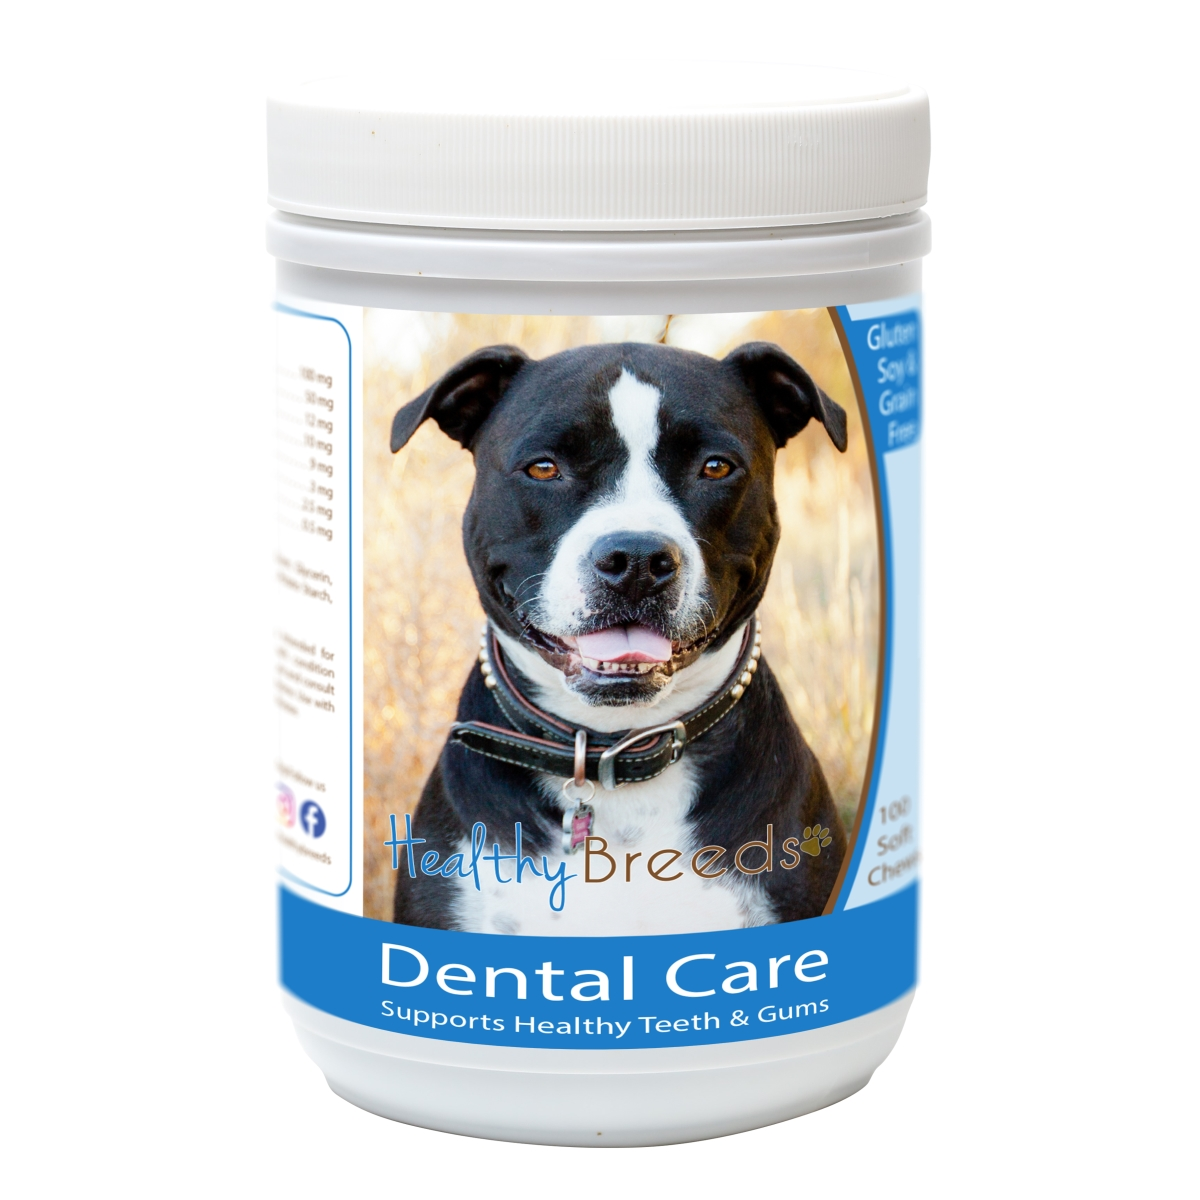 Healthy Breeds 840235162568 Pit Bull Breath Care Soft Chews for Dogs - 60 Count